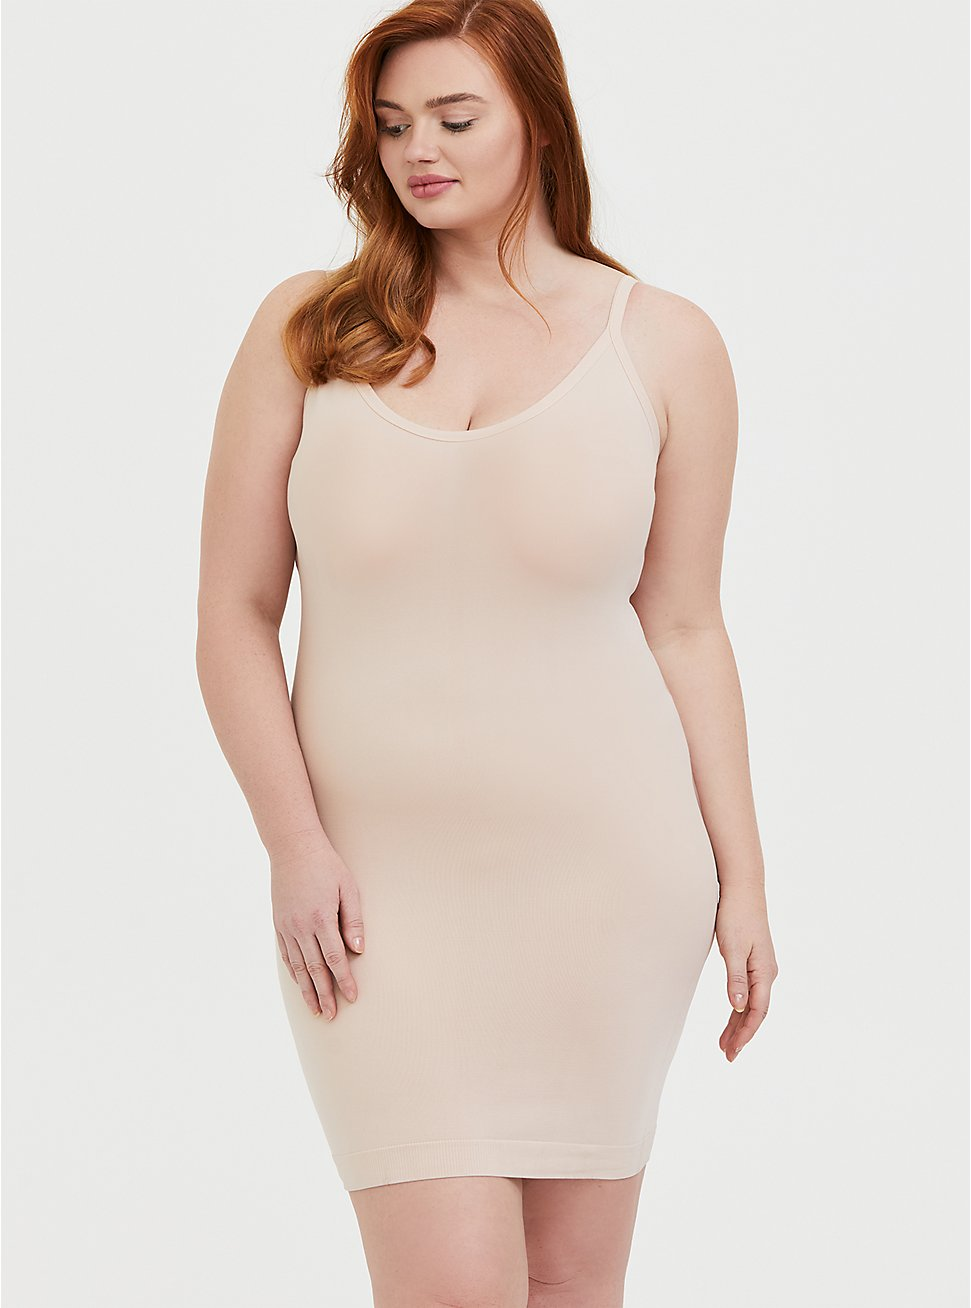 Nude Seamless 360°  Smoothing™ Slip Dress, ROSE DUST, hi-res